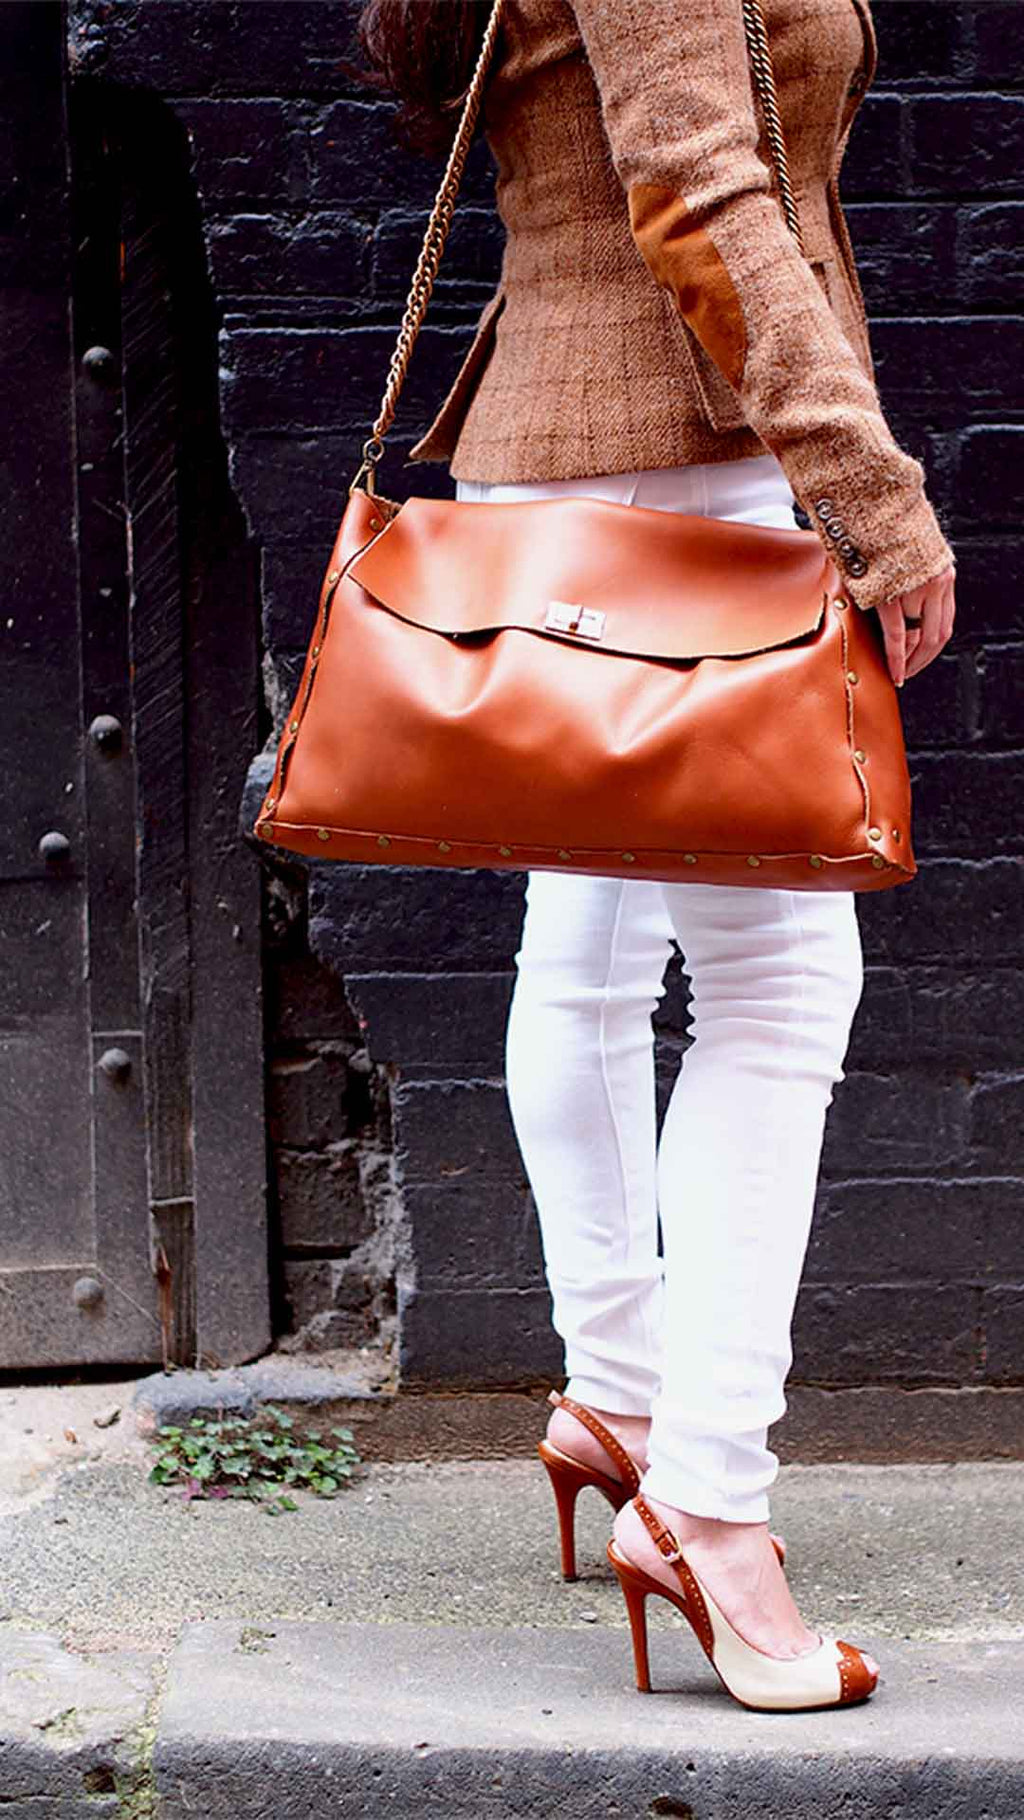 Best Biggest (and baddest) Minimal Design Leather Shoulder Bag